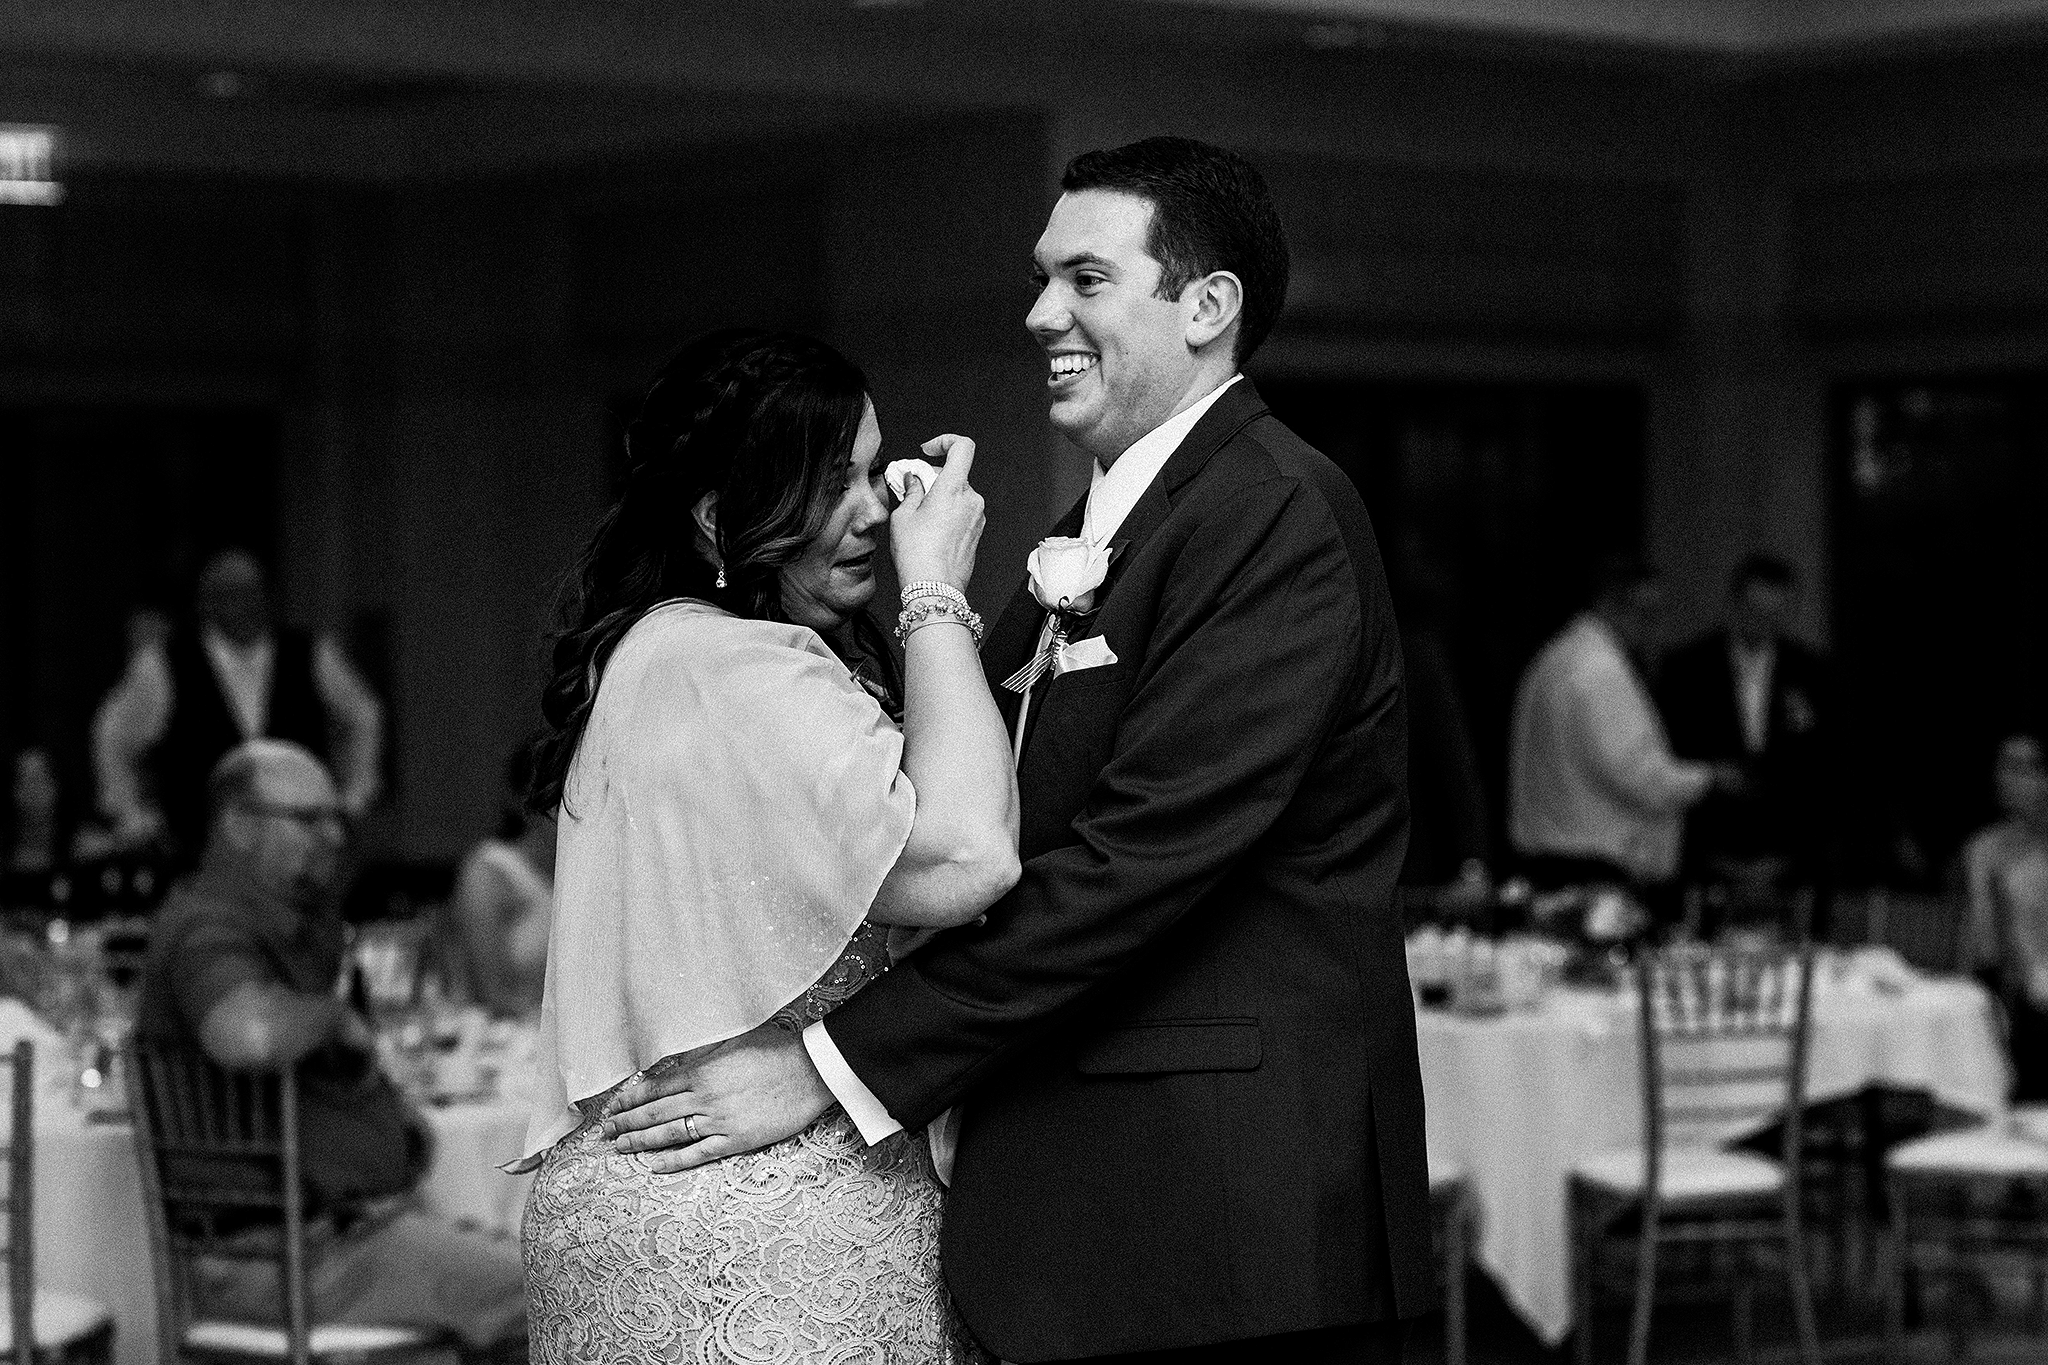 groom and mother dancing, mother wiping tears | barsema alumni center dekalb IL wedding photographer